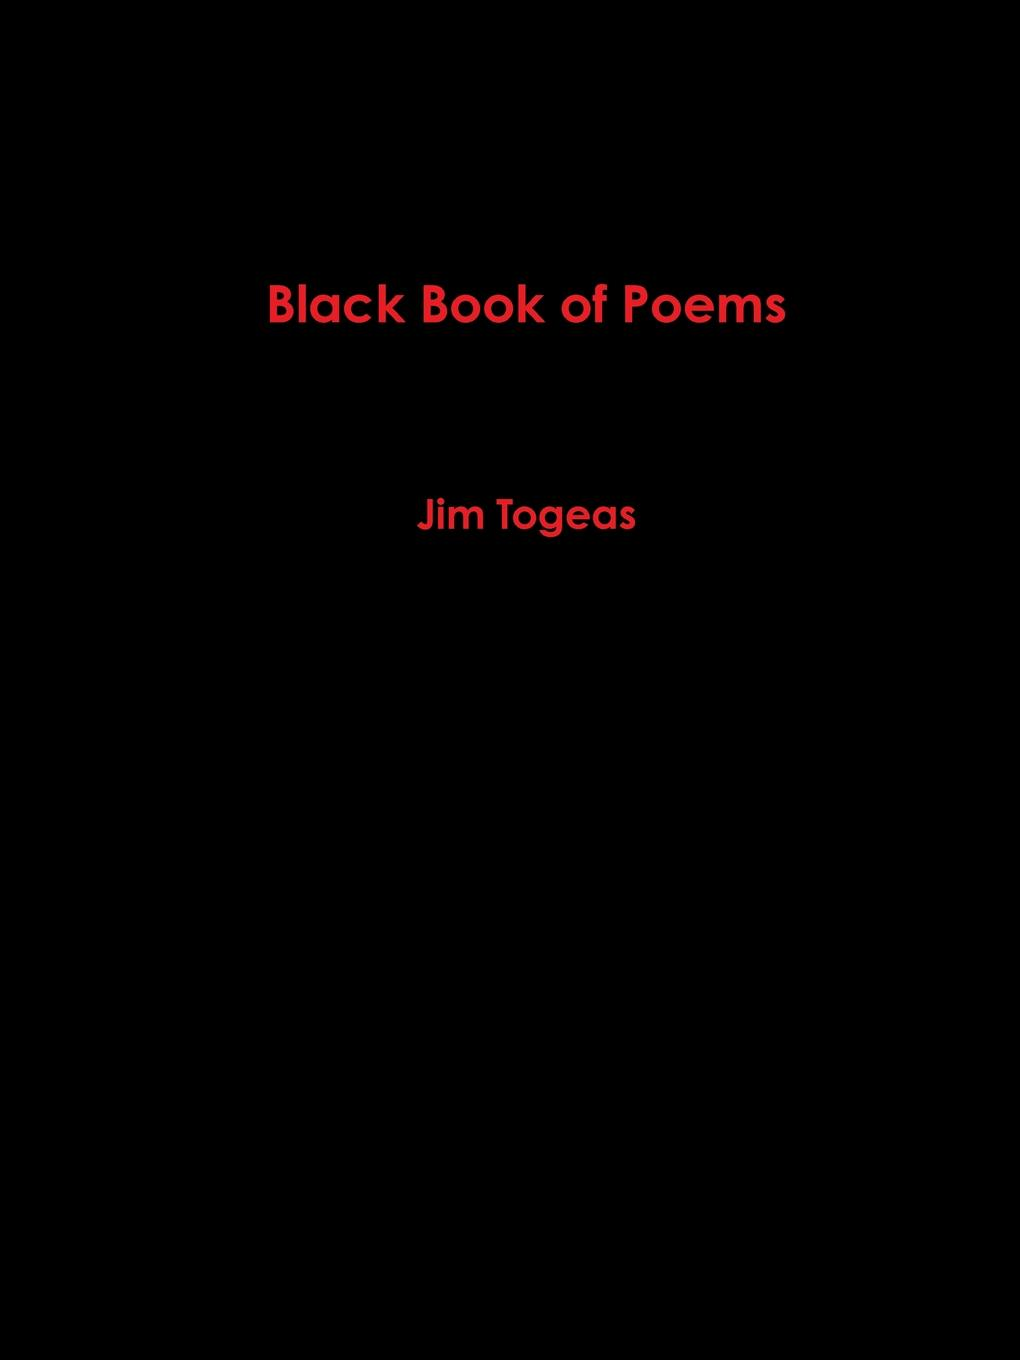 James Togeas Black Book of Poems carlton dawe love and the world and other poems and other poems